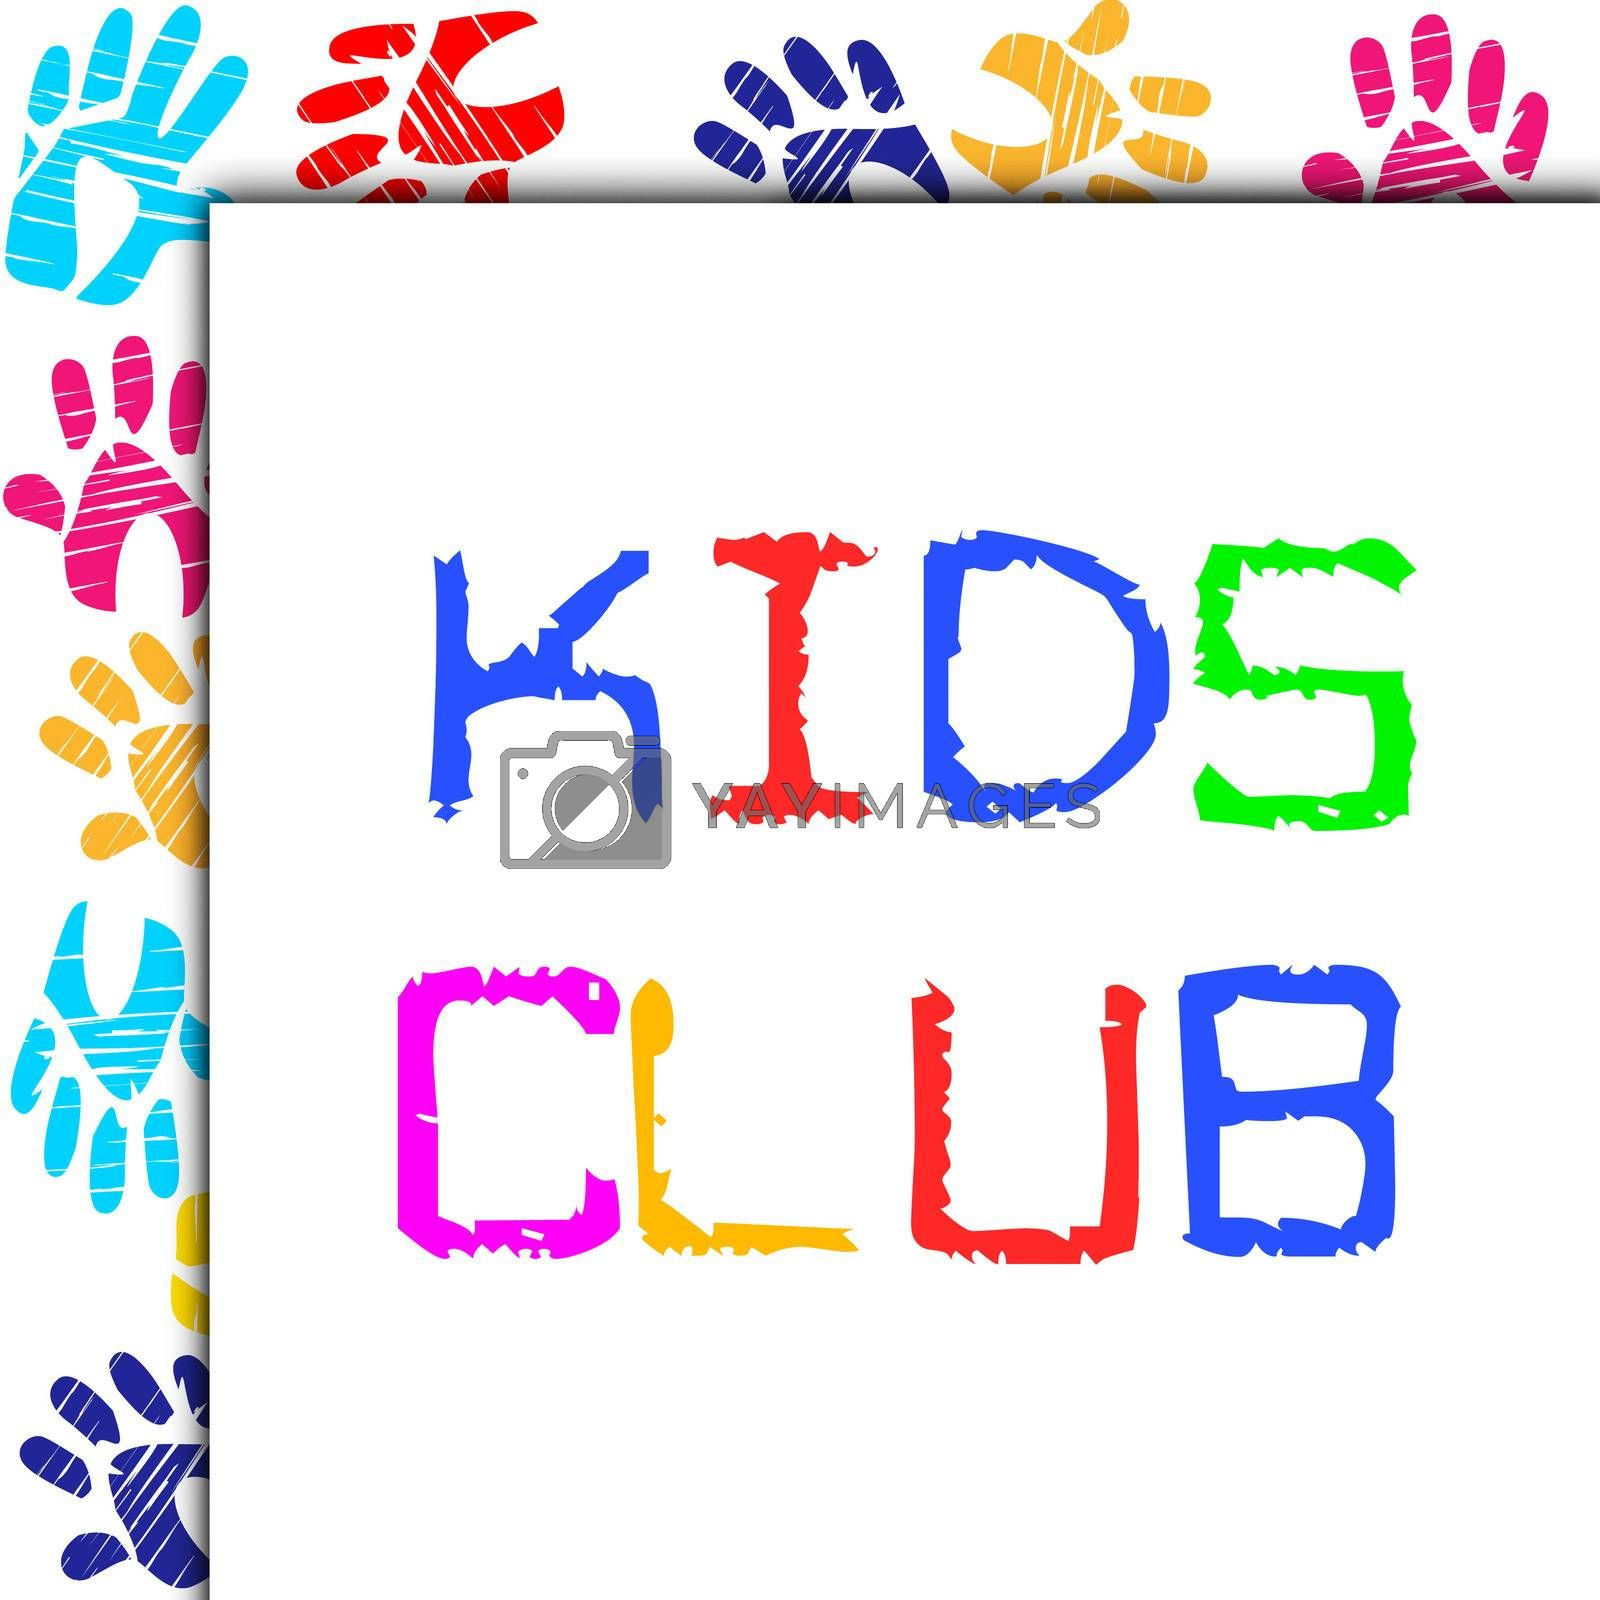 Kids Club Showing Team Join And Youth